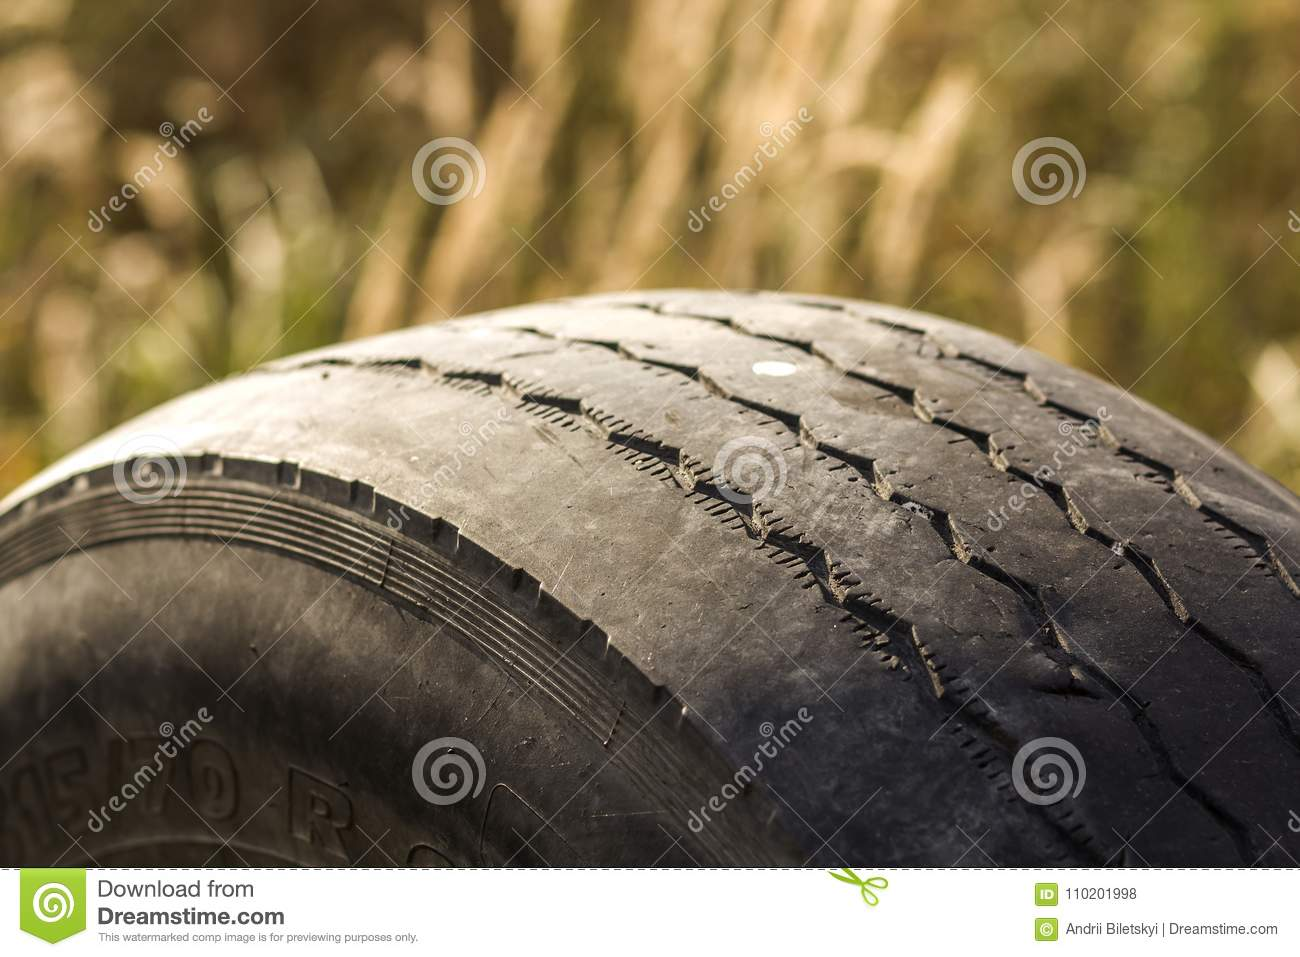 Close-up detail of car wheel tire badly worn and bald because of poor tracking or alignment of the wheels.